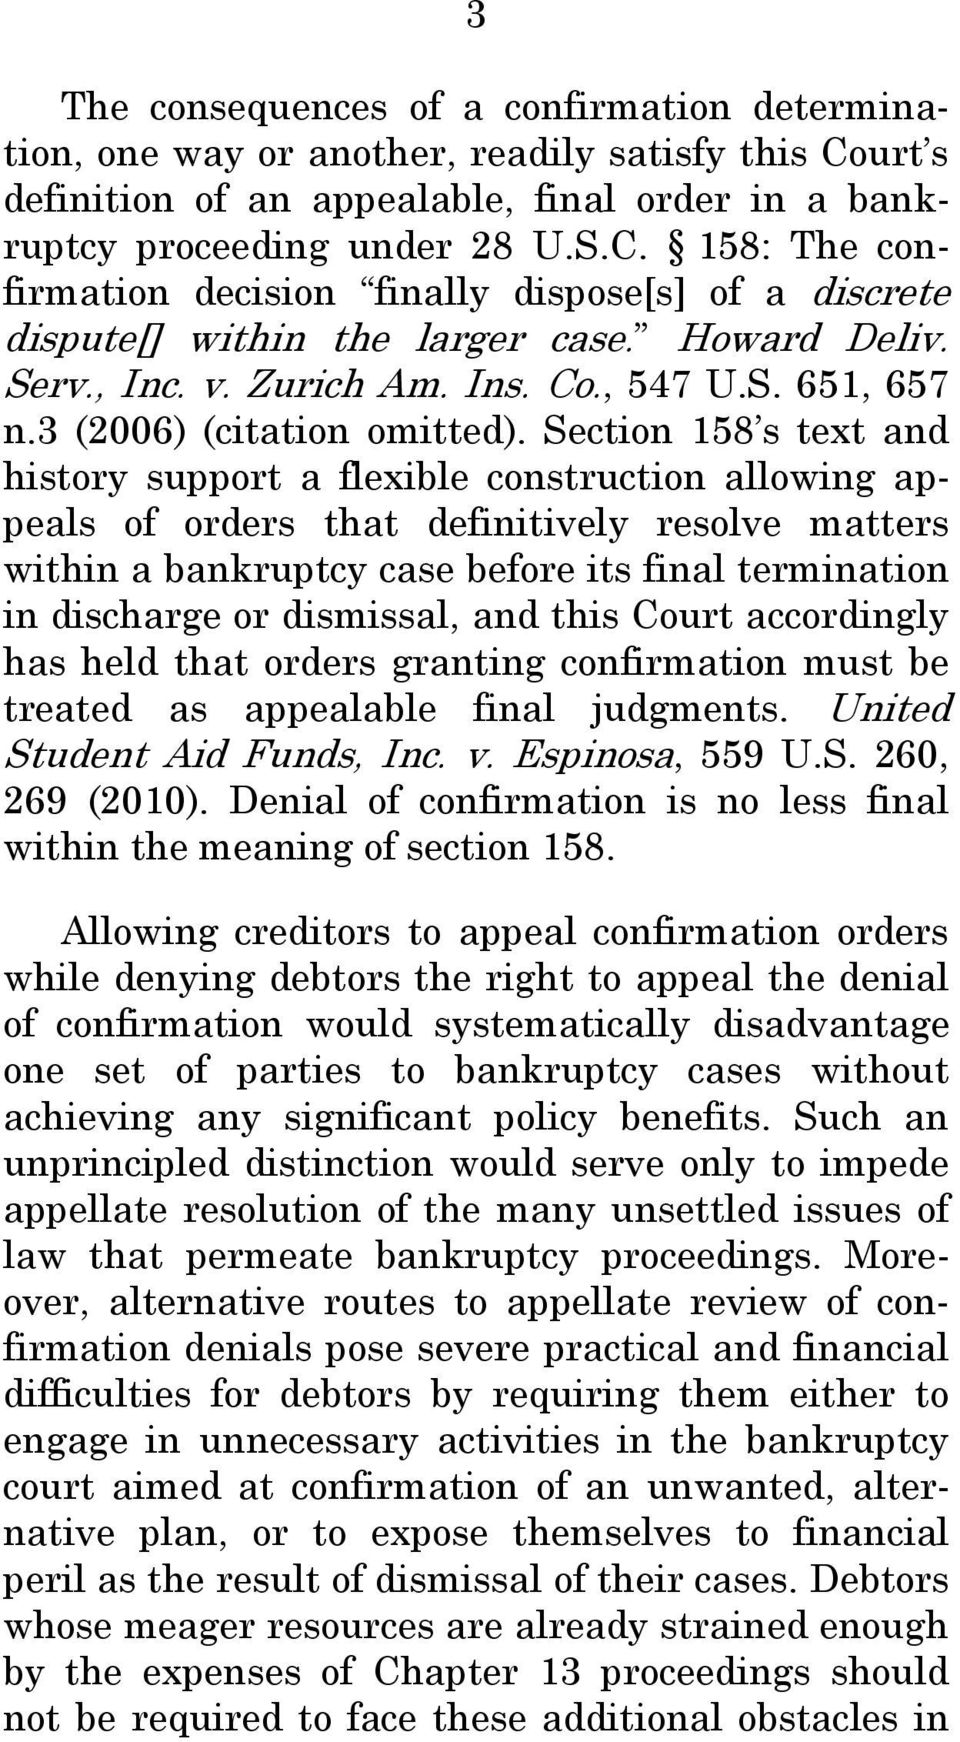 Section 158 s text and history support a flexible construction allowing appeals of orders that definitively resolve matters within a bankruptcy case before its final termination in discharge or